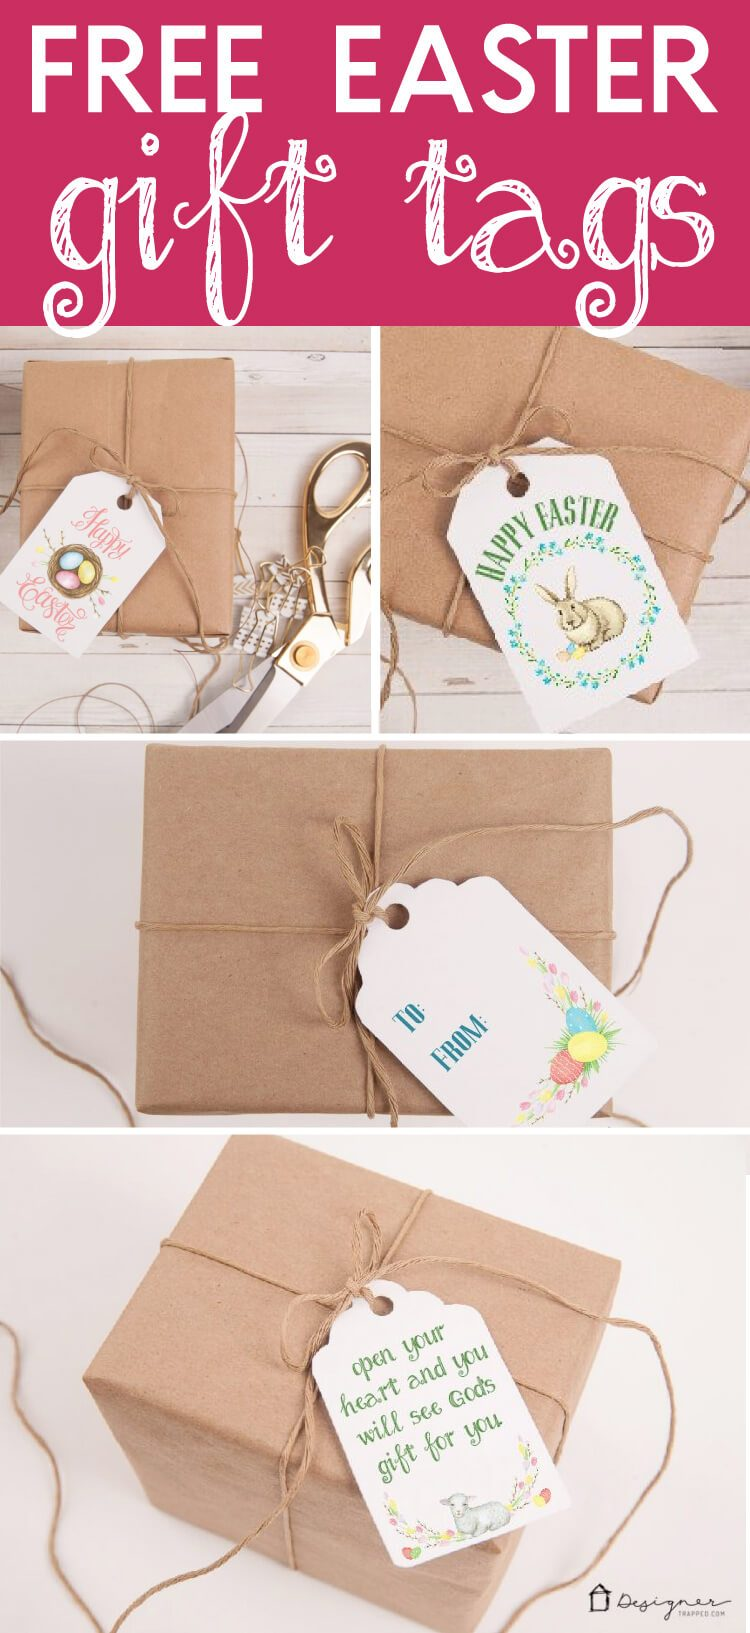 These free Easter printables will add the perfect touch to any Easter gifts you are giving this year! Just print these Easter gift tags off and pop them on your gifts :) Click the pin to get them delivered to your inbox!